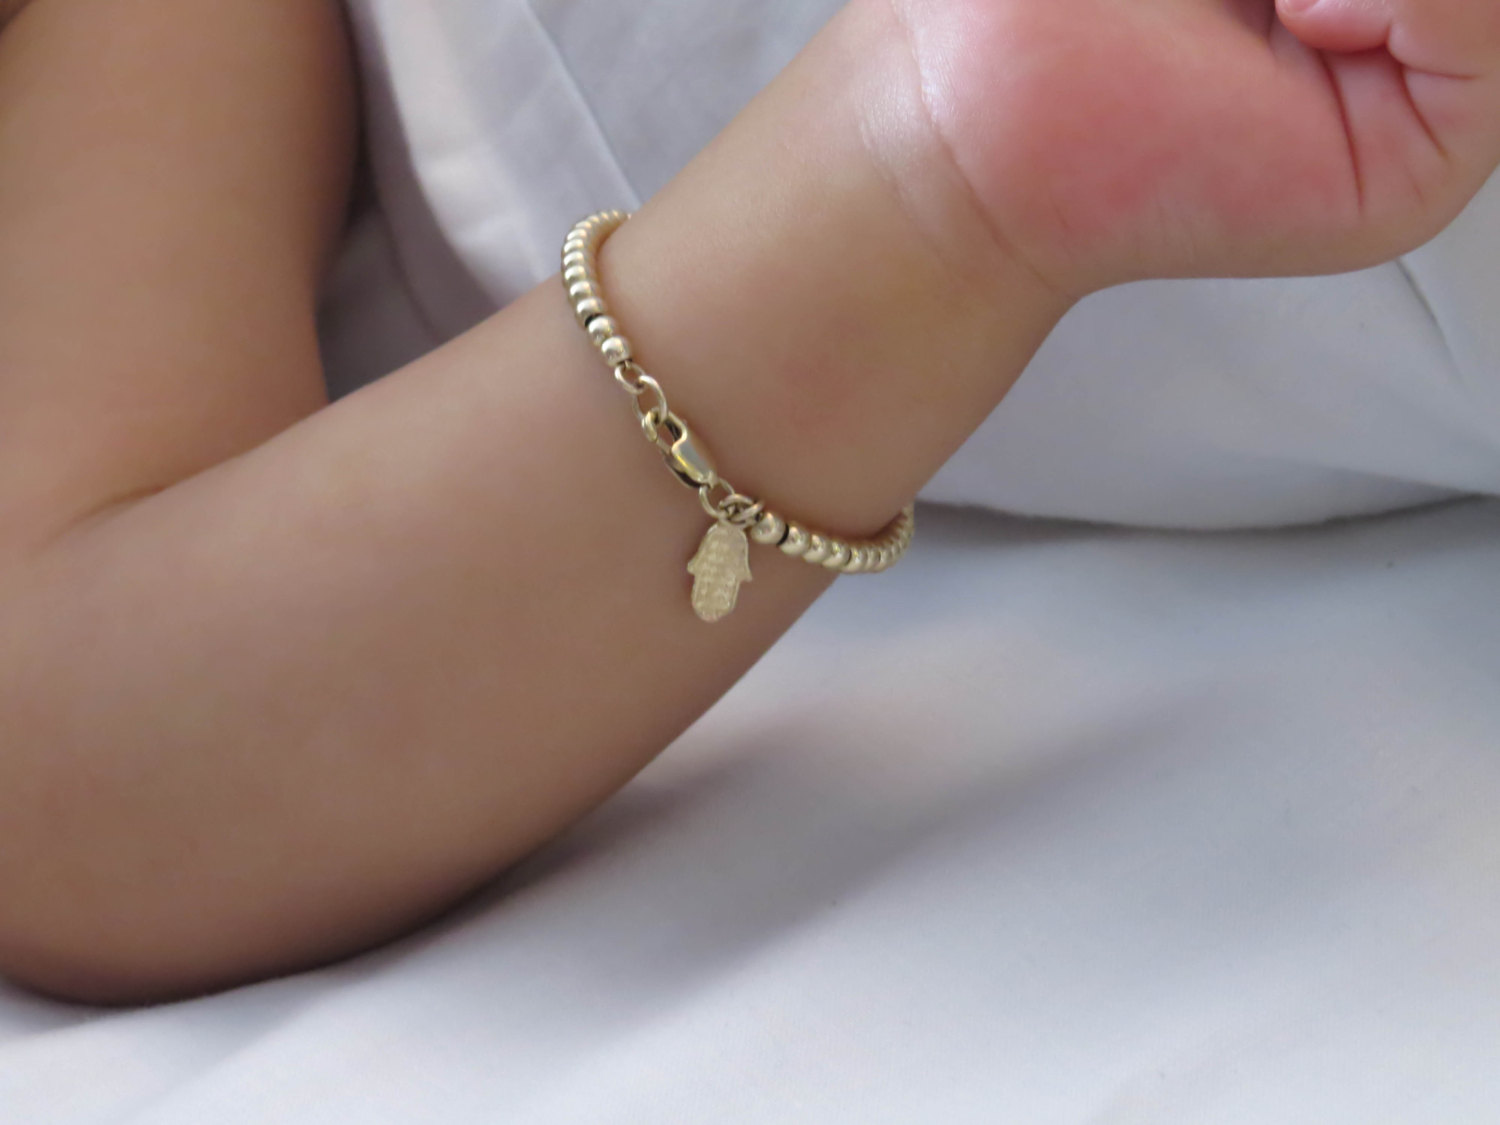 Baby Bracelets: Bracelets For Girls & Boys! | JewelryJealousy